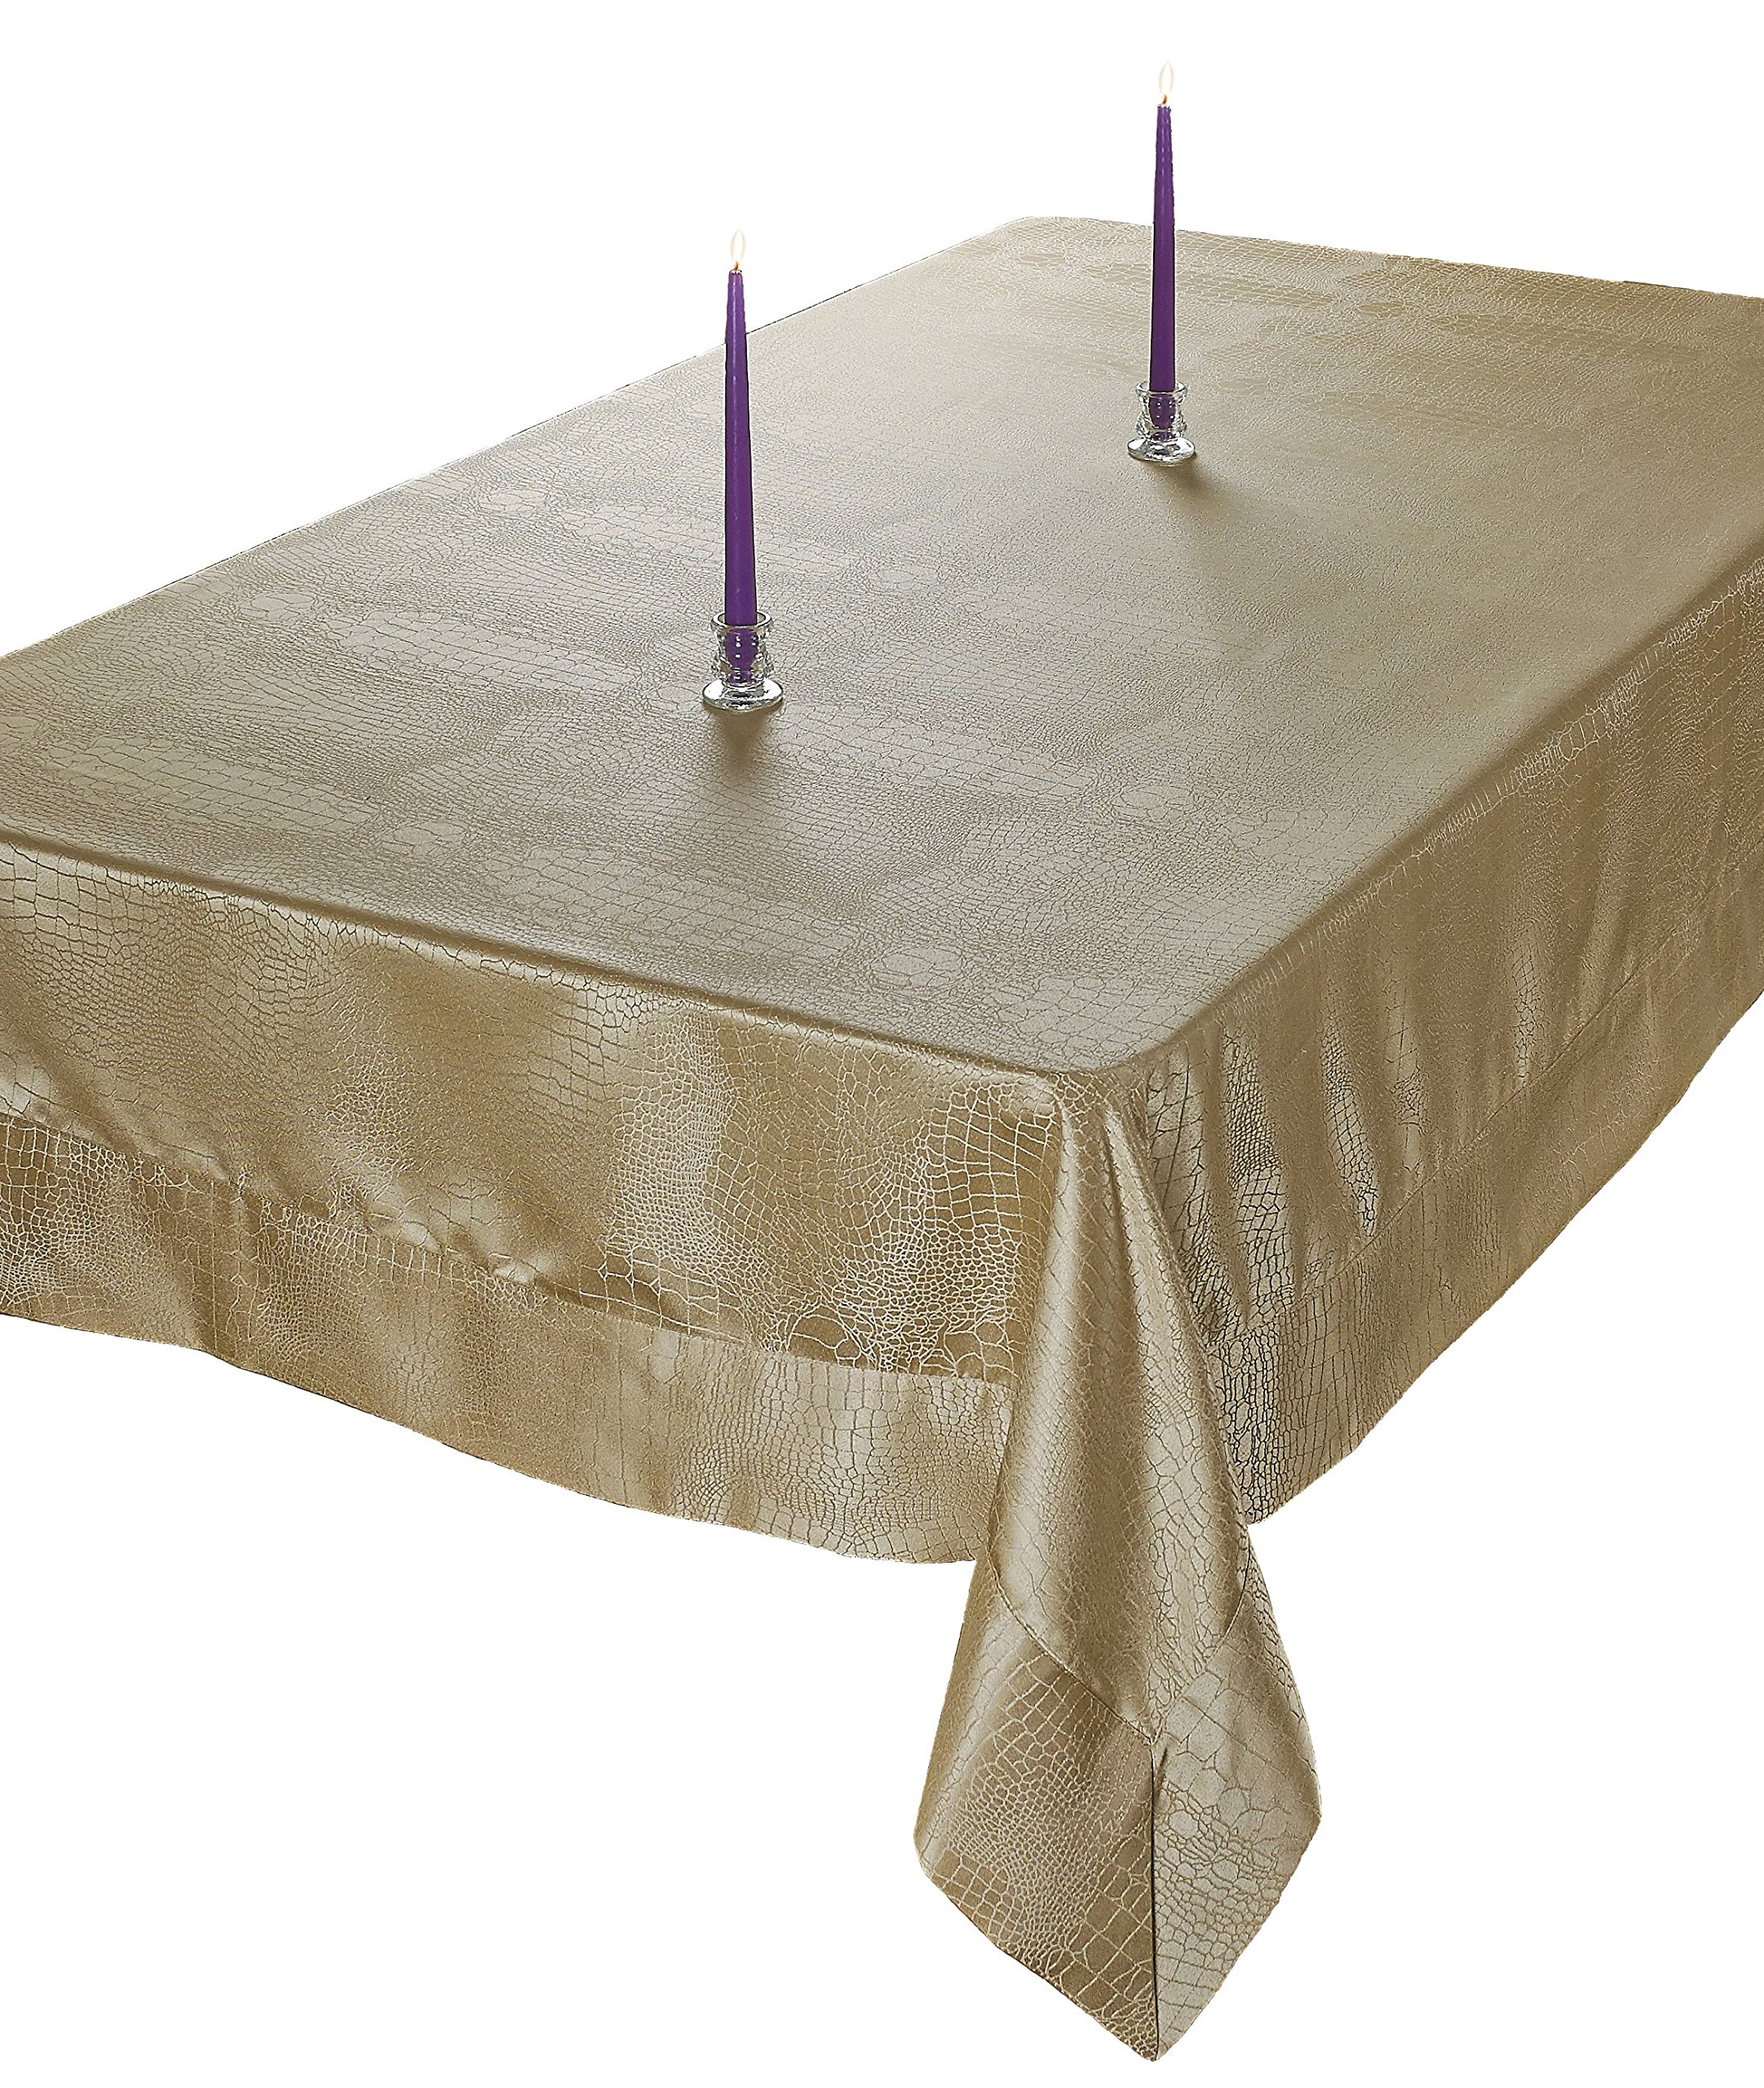 "Violet Linen Luxurious Damask Crocodile Design Tablecloths, 80"" x 80"" Square, Gold - Live in style ! - the Crocodile tablecloths has the perfect combination of Size, detailing, and color, allowing you to choose the best tablecloth for every occasion Durable construction - they are manufactured from super hard wearing 100Percent polyester material, with a seamless construction that won't easily fray after long term use Add a fresh touch - update your home with this attractive Crocodile damask design tablecloth, that will brighten up your home, and will surely add a beautiful touch to your table decor - tablecloths, kitchen-dining-room-table-linens, kitchen-dining-room - A1jeGhkIJ3L -"